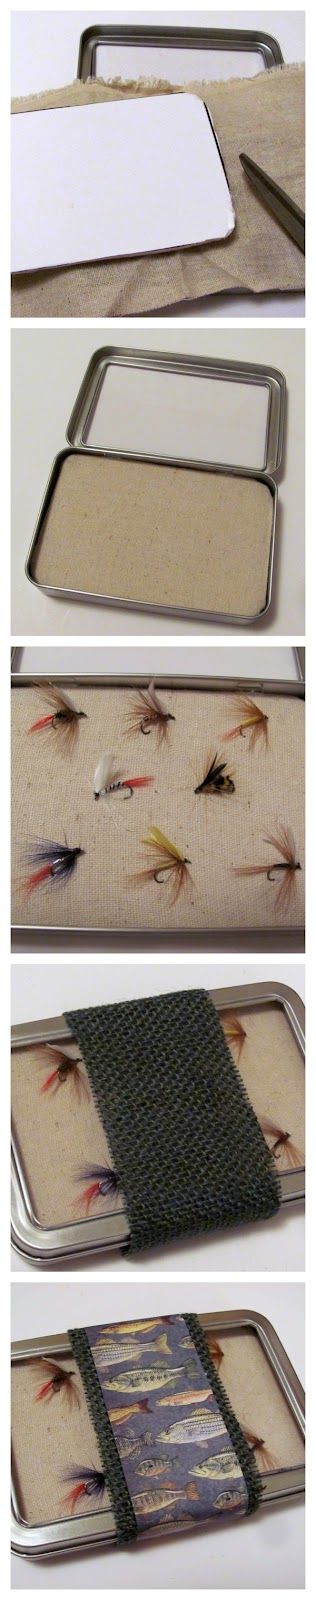 Father's Day Gift Idea: Fly Fishing Box {#FathersDay} 23